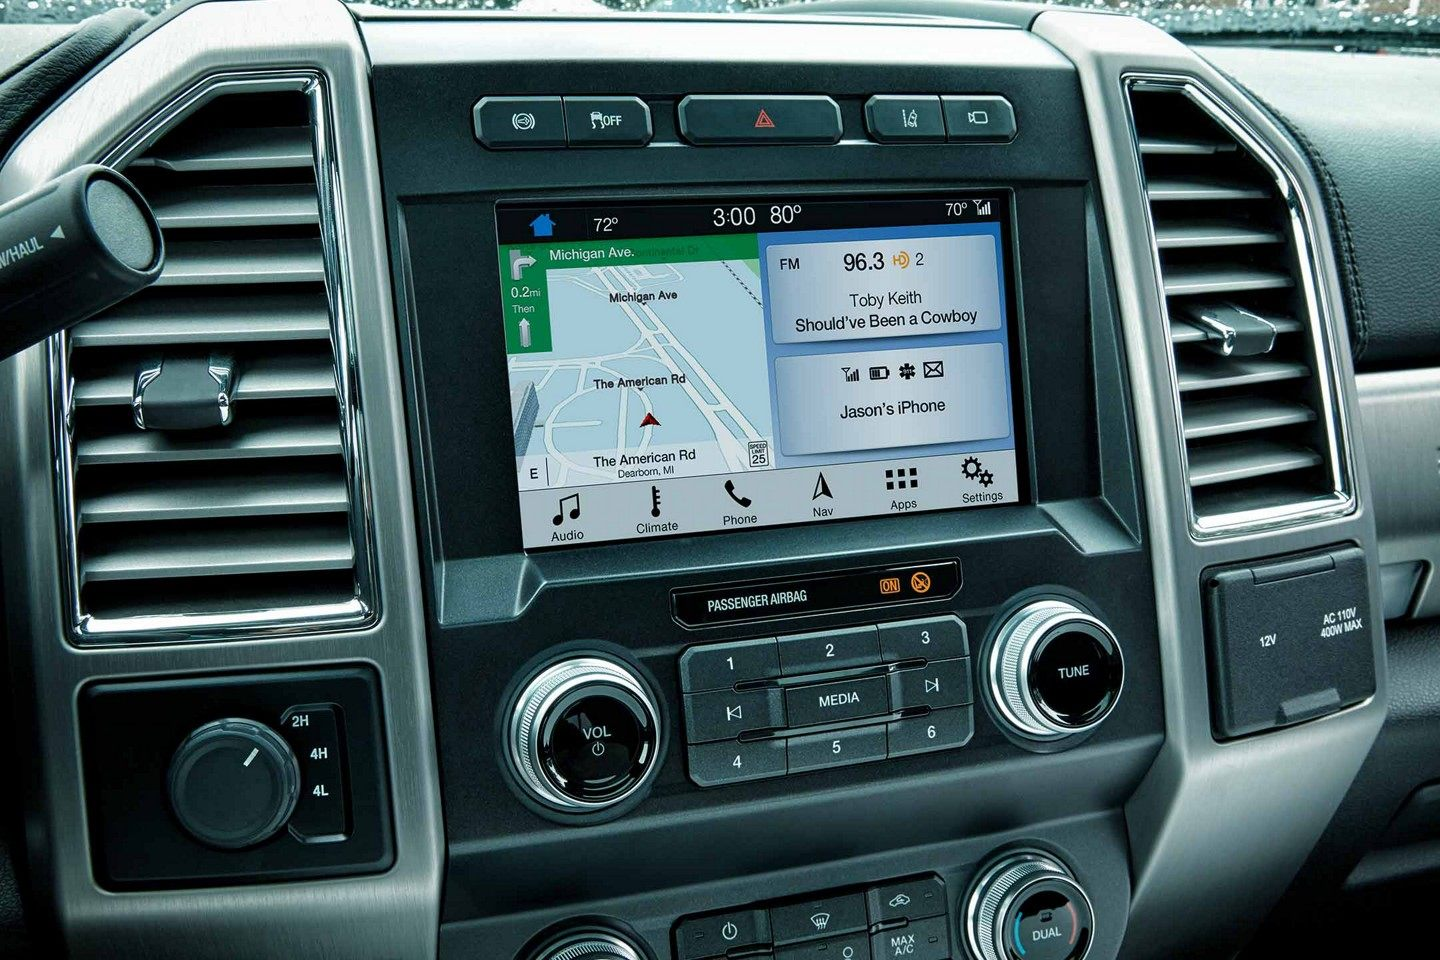 Ford F-250 Infotainment Center